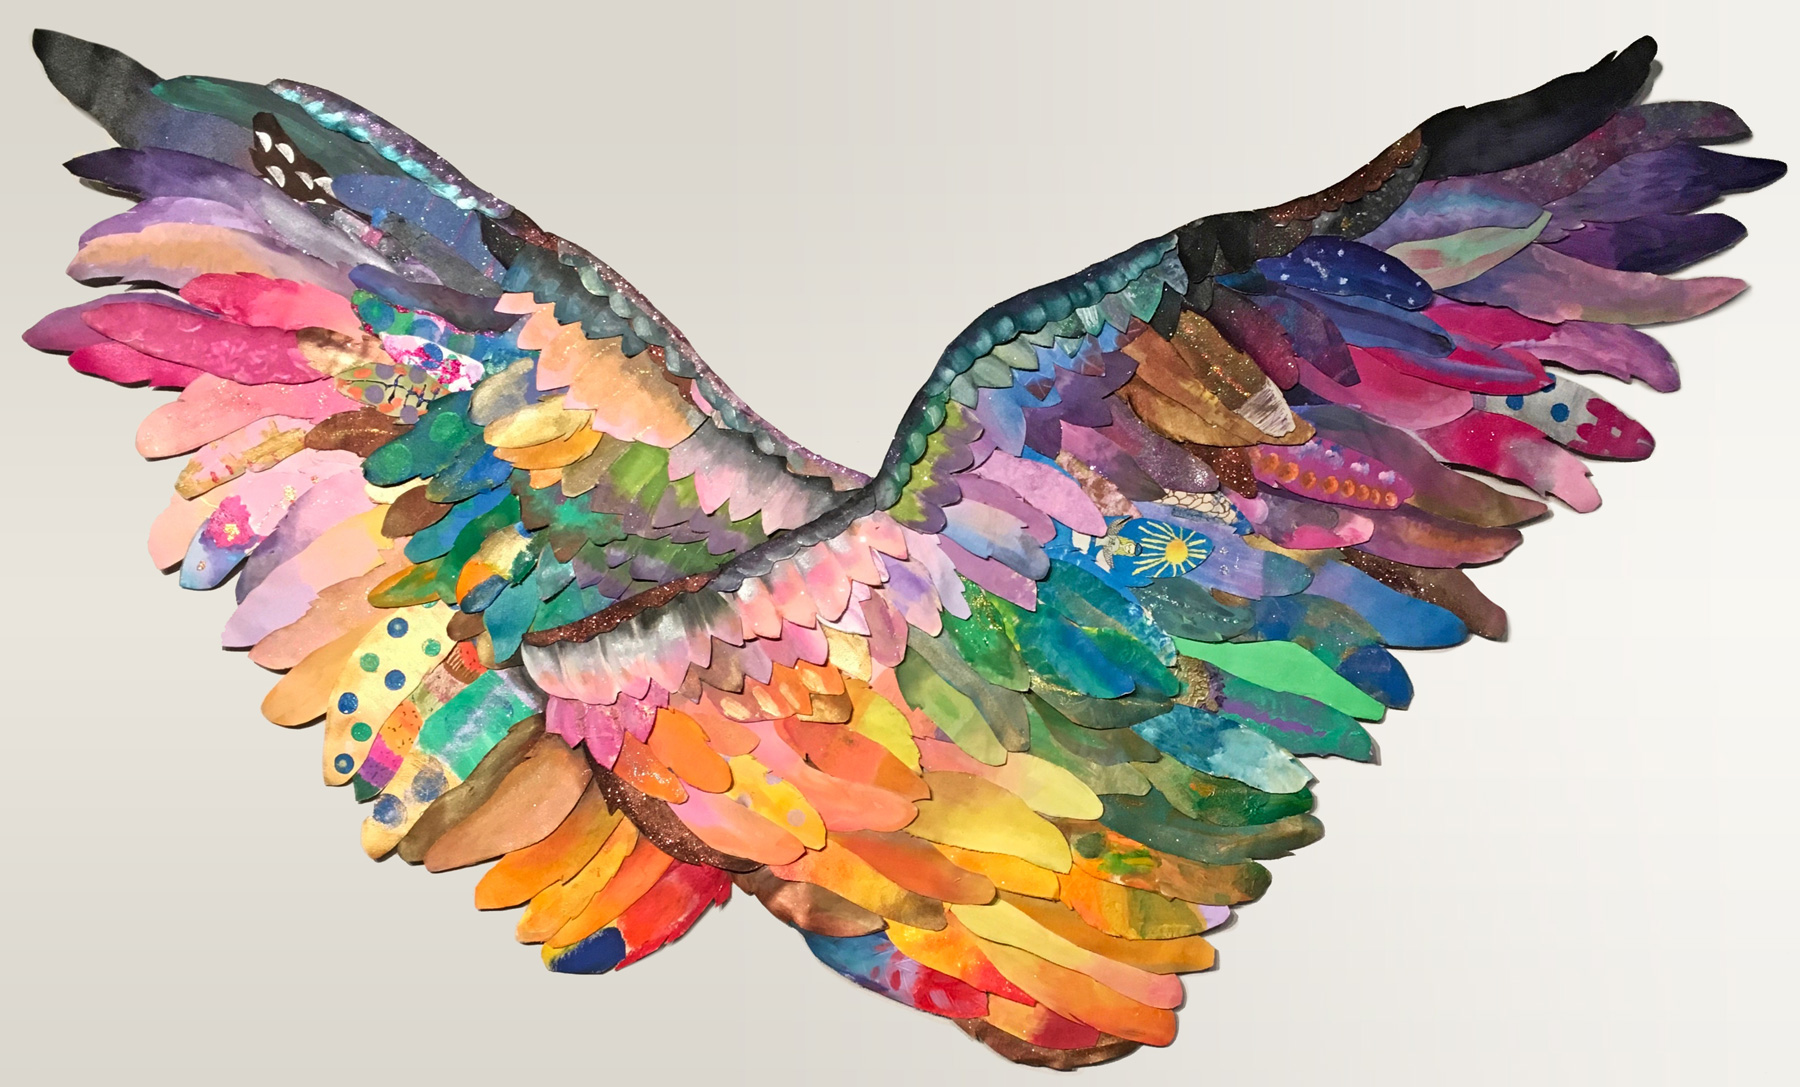 Art of Giving: Spread Your Wings